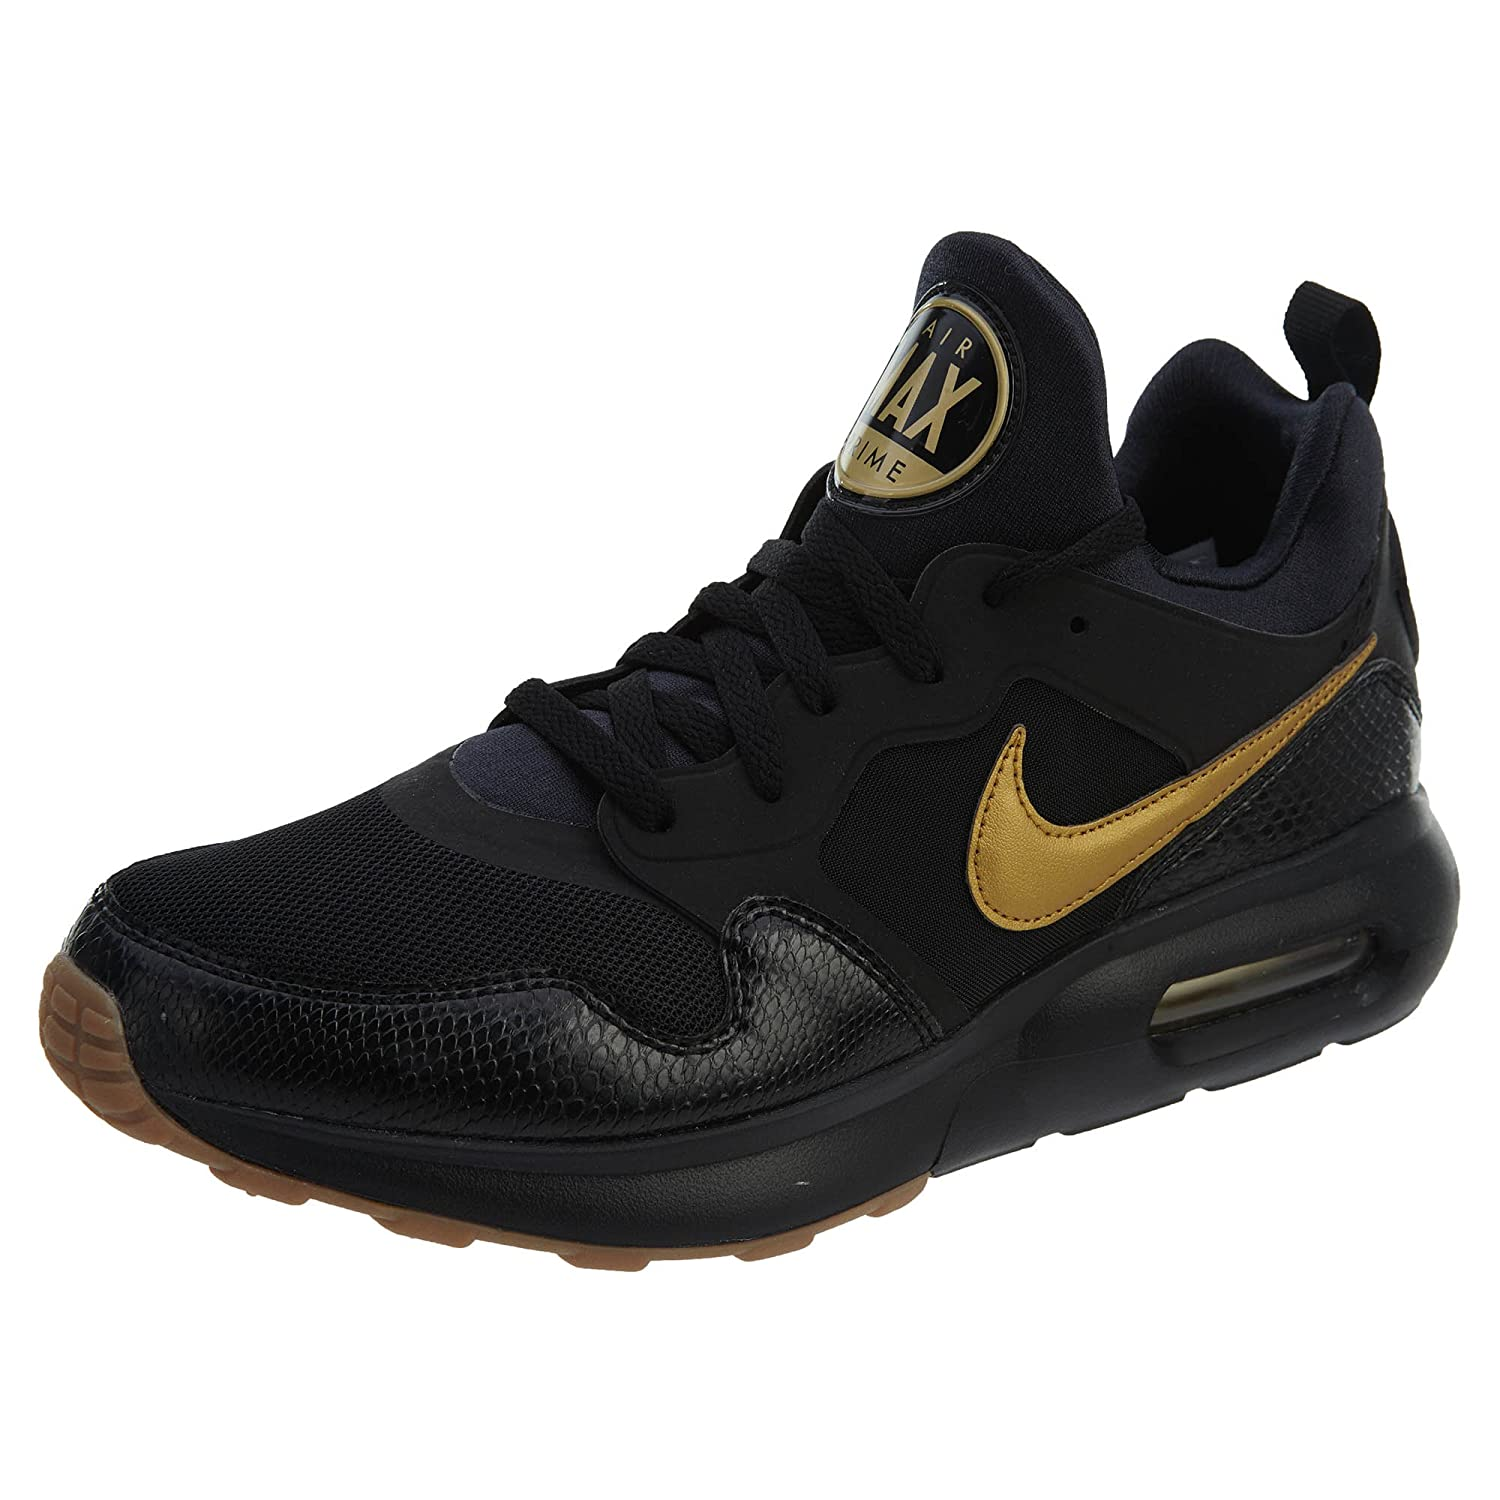 NIKE Men's Air Max Prime Running Shoe B0792MC3TX 9.5 D(M) US|Black/Metallic Gold